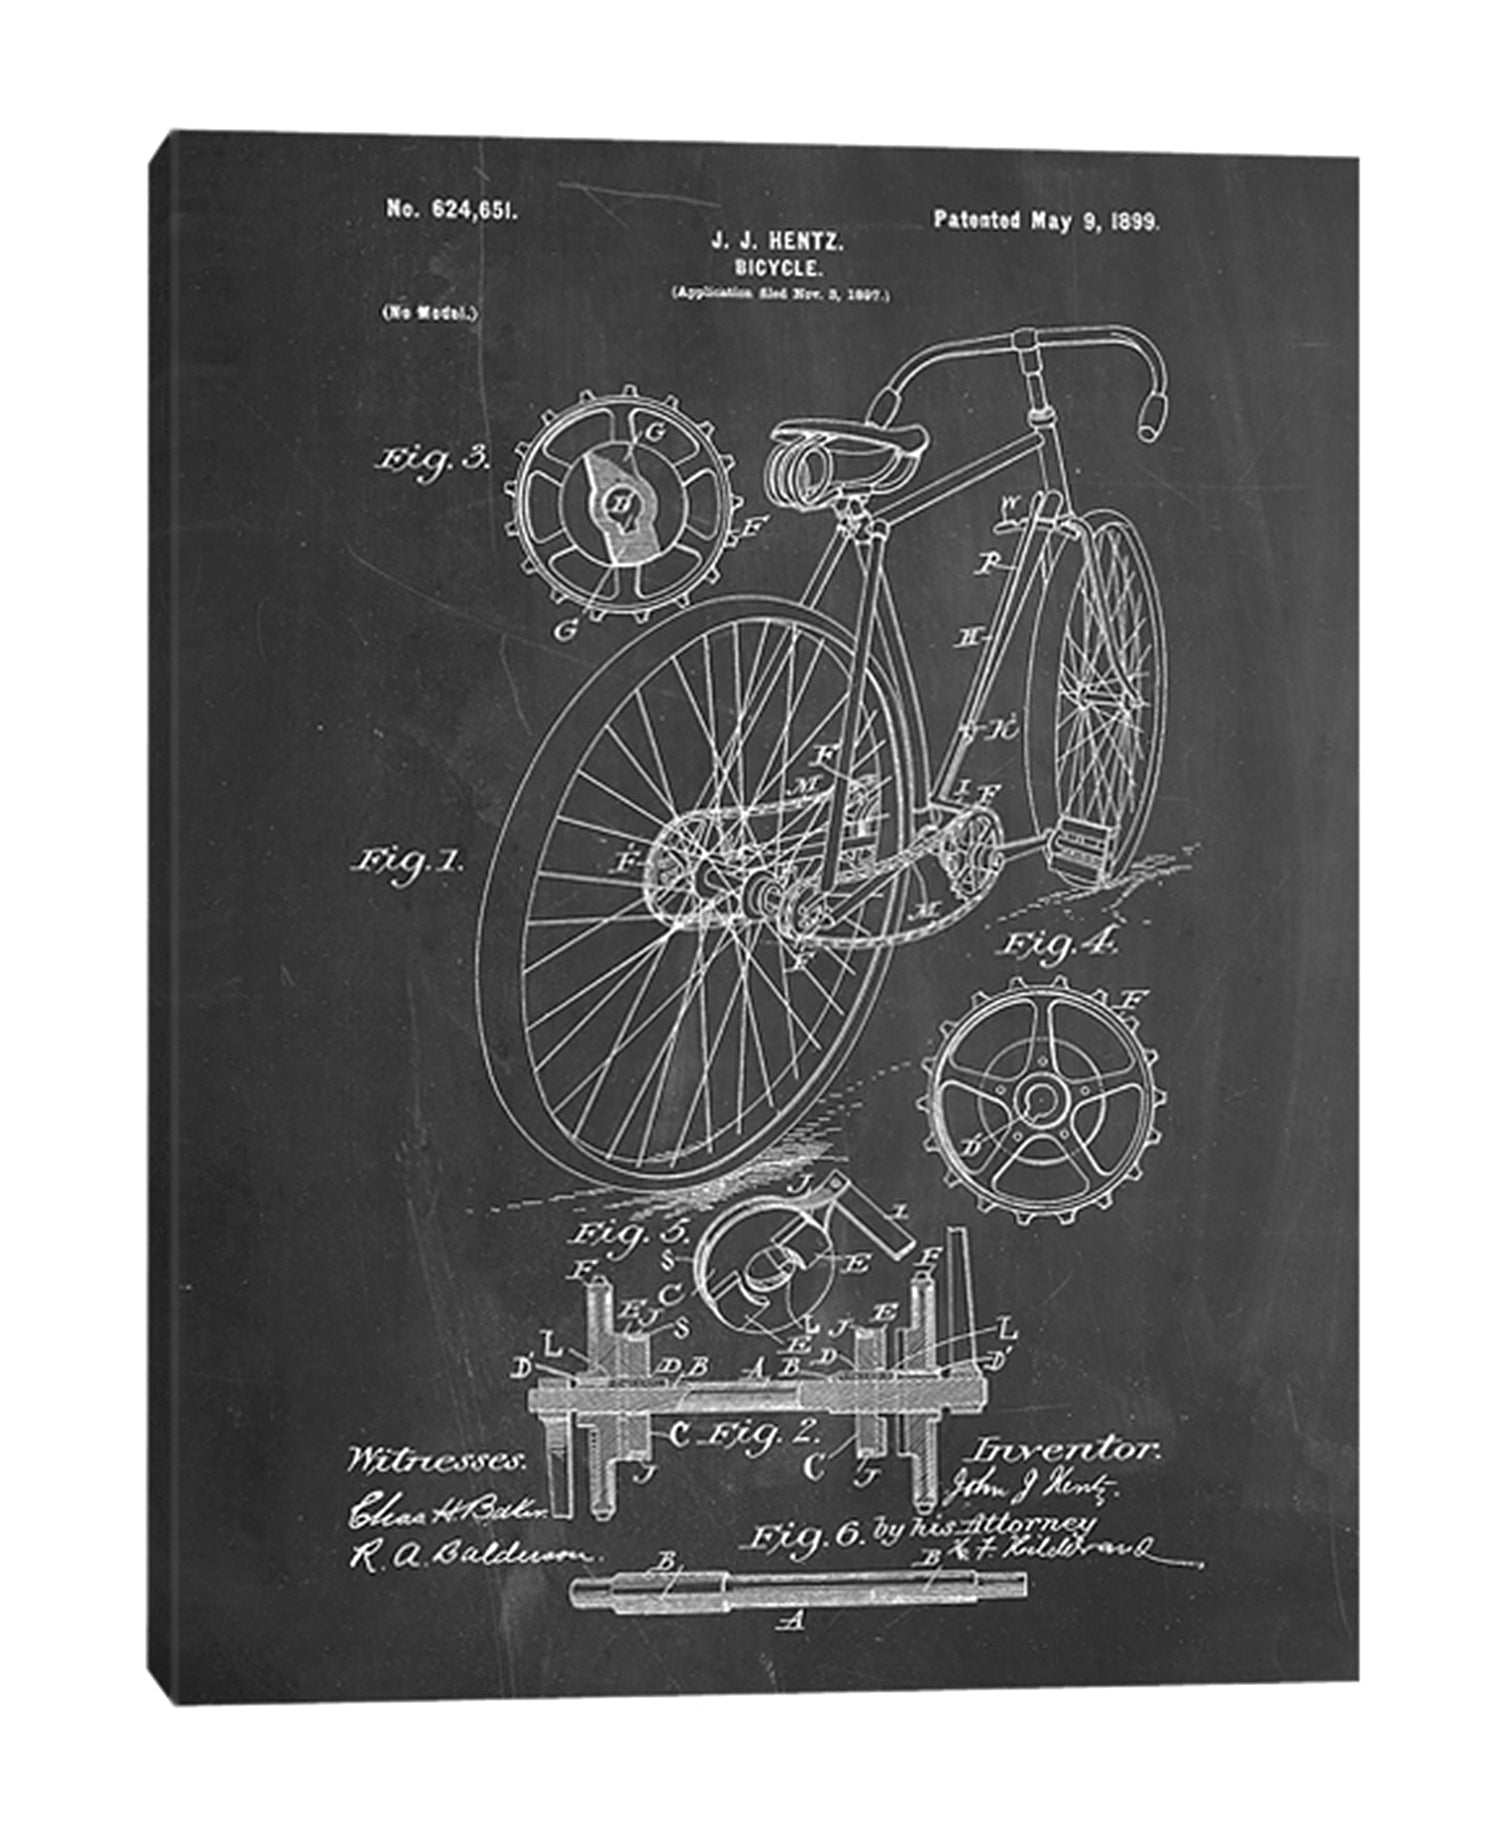 Cole-Borders,Modern & Contemporary,Transportation,bicycle,bikes,bicycles,blueprints,patented,drawings,sketches,words and phrases,Red,Charcoal Gray,Slate Gray,Blue,Black